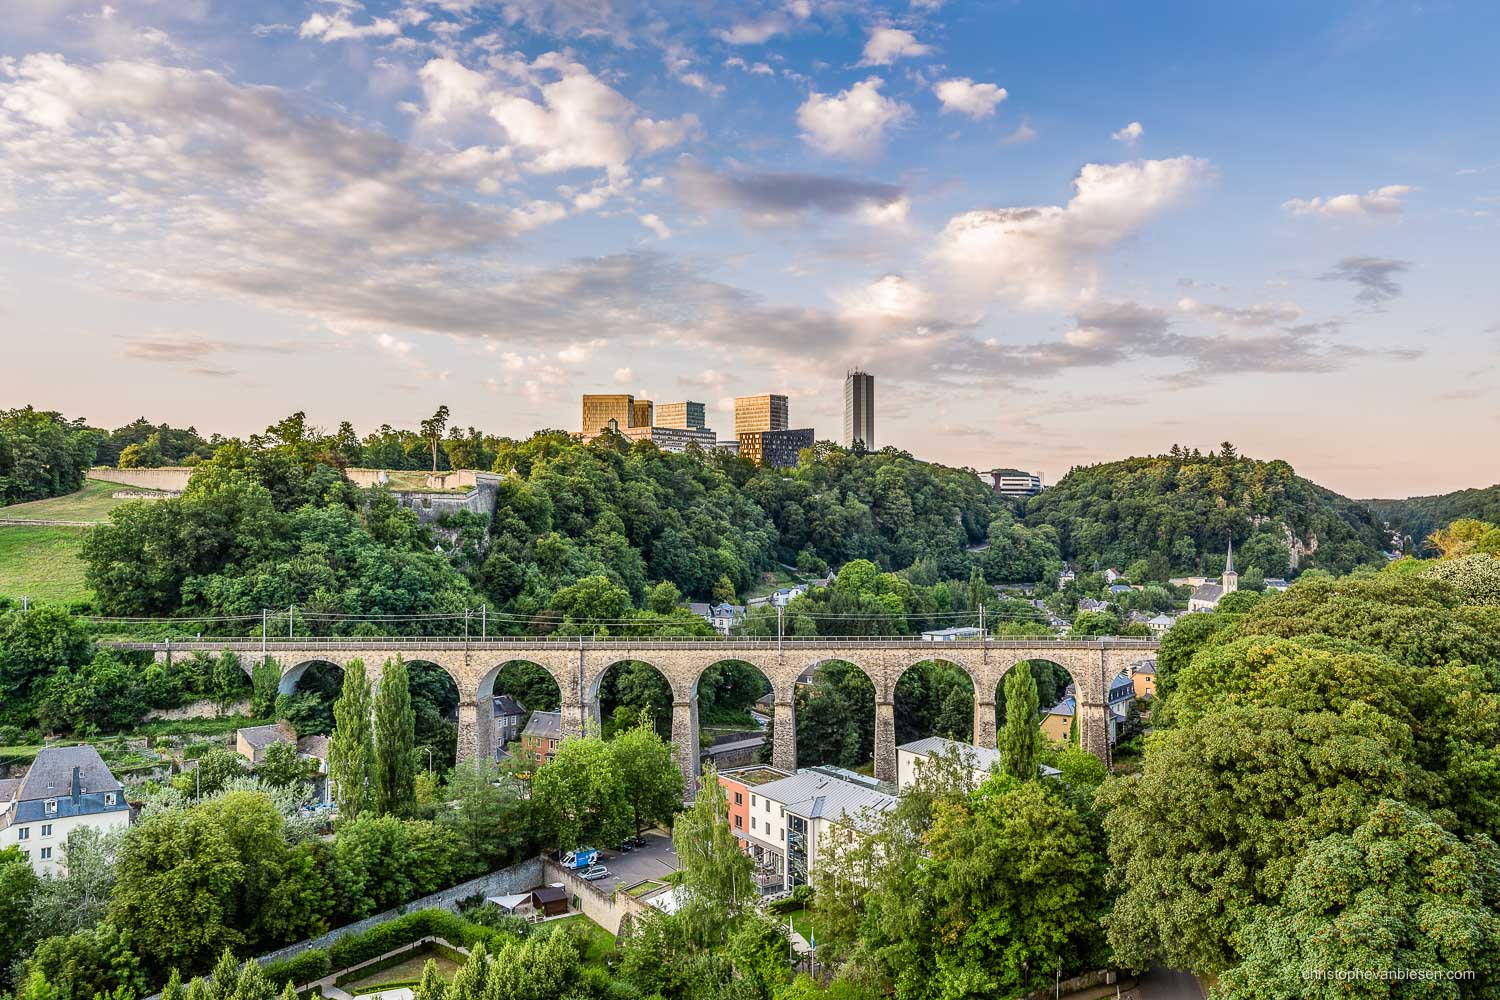 Summer in Luxembourg - Luxembourg's Kirchberg and Pfaffenthal with the Old Bridge, also known as the Passerelle - Steel and Stone